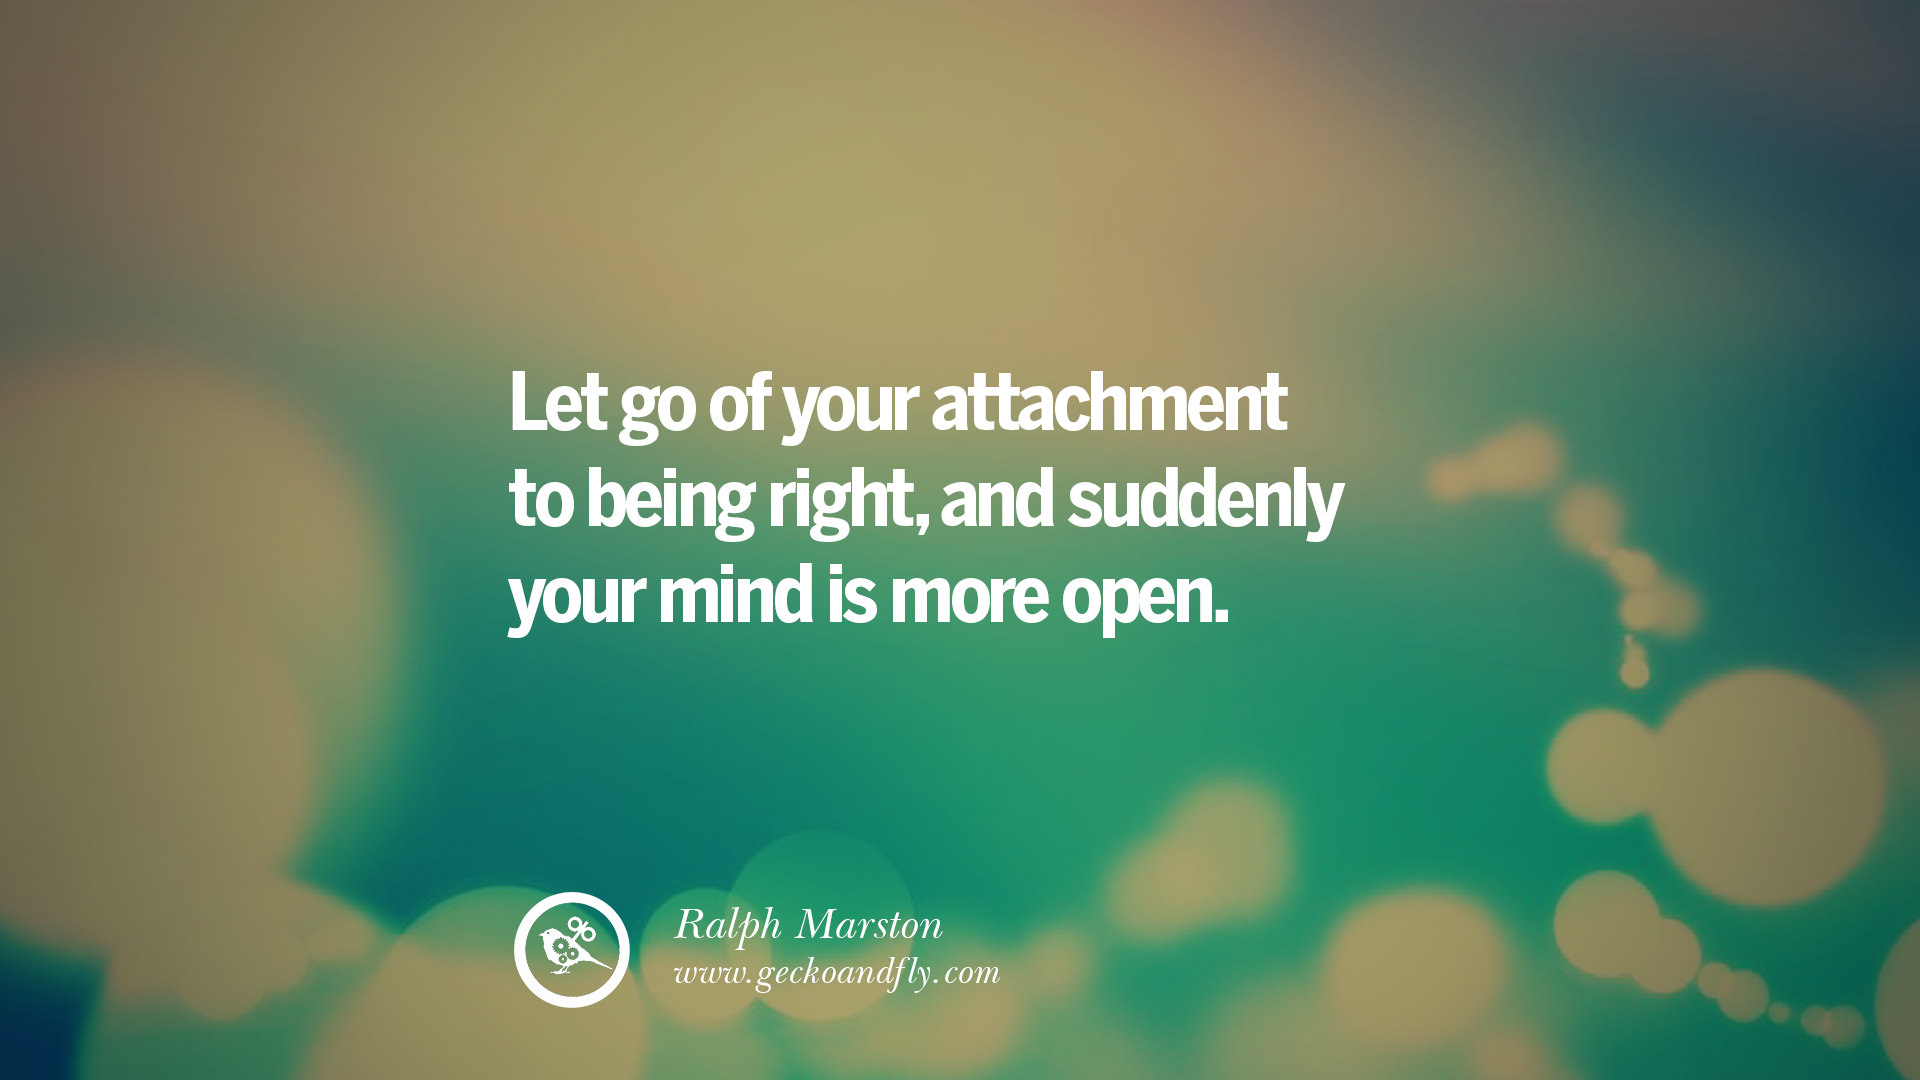 Quotes For Relationships 50 Quotes About Moving On And Letting Go Of Relationship And Love